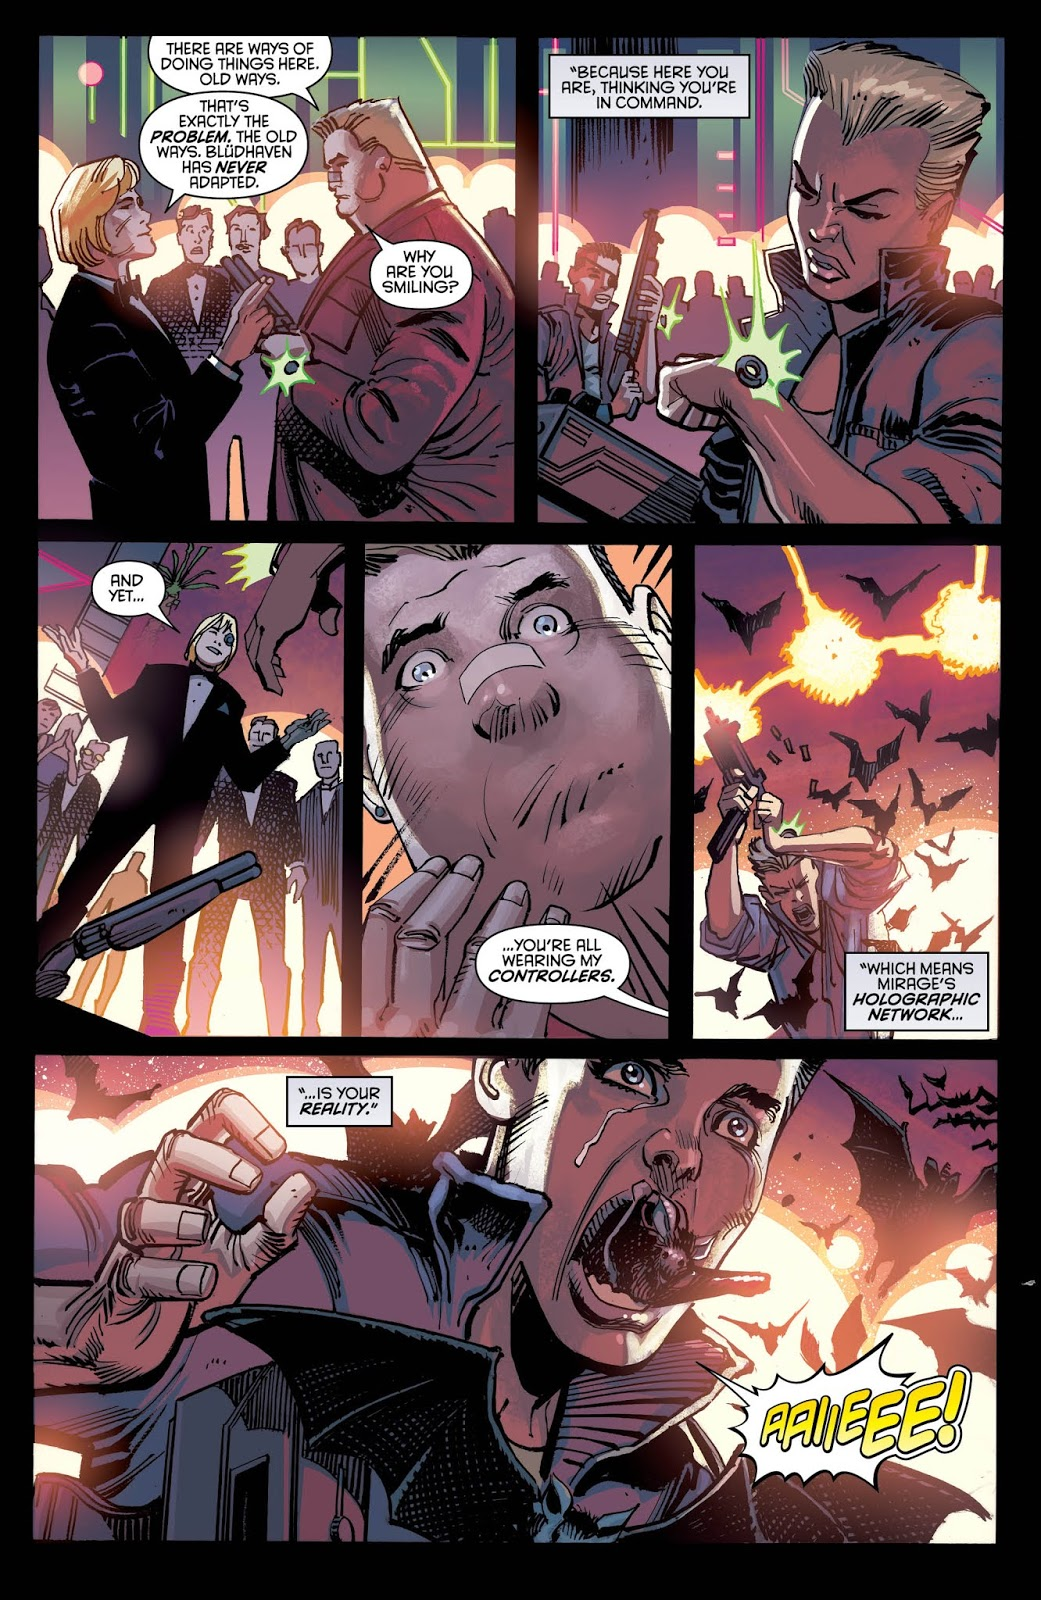 NIGHTWING #47 Page 5. Image Courtesy of DC Entertainment.